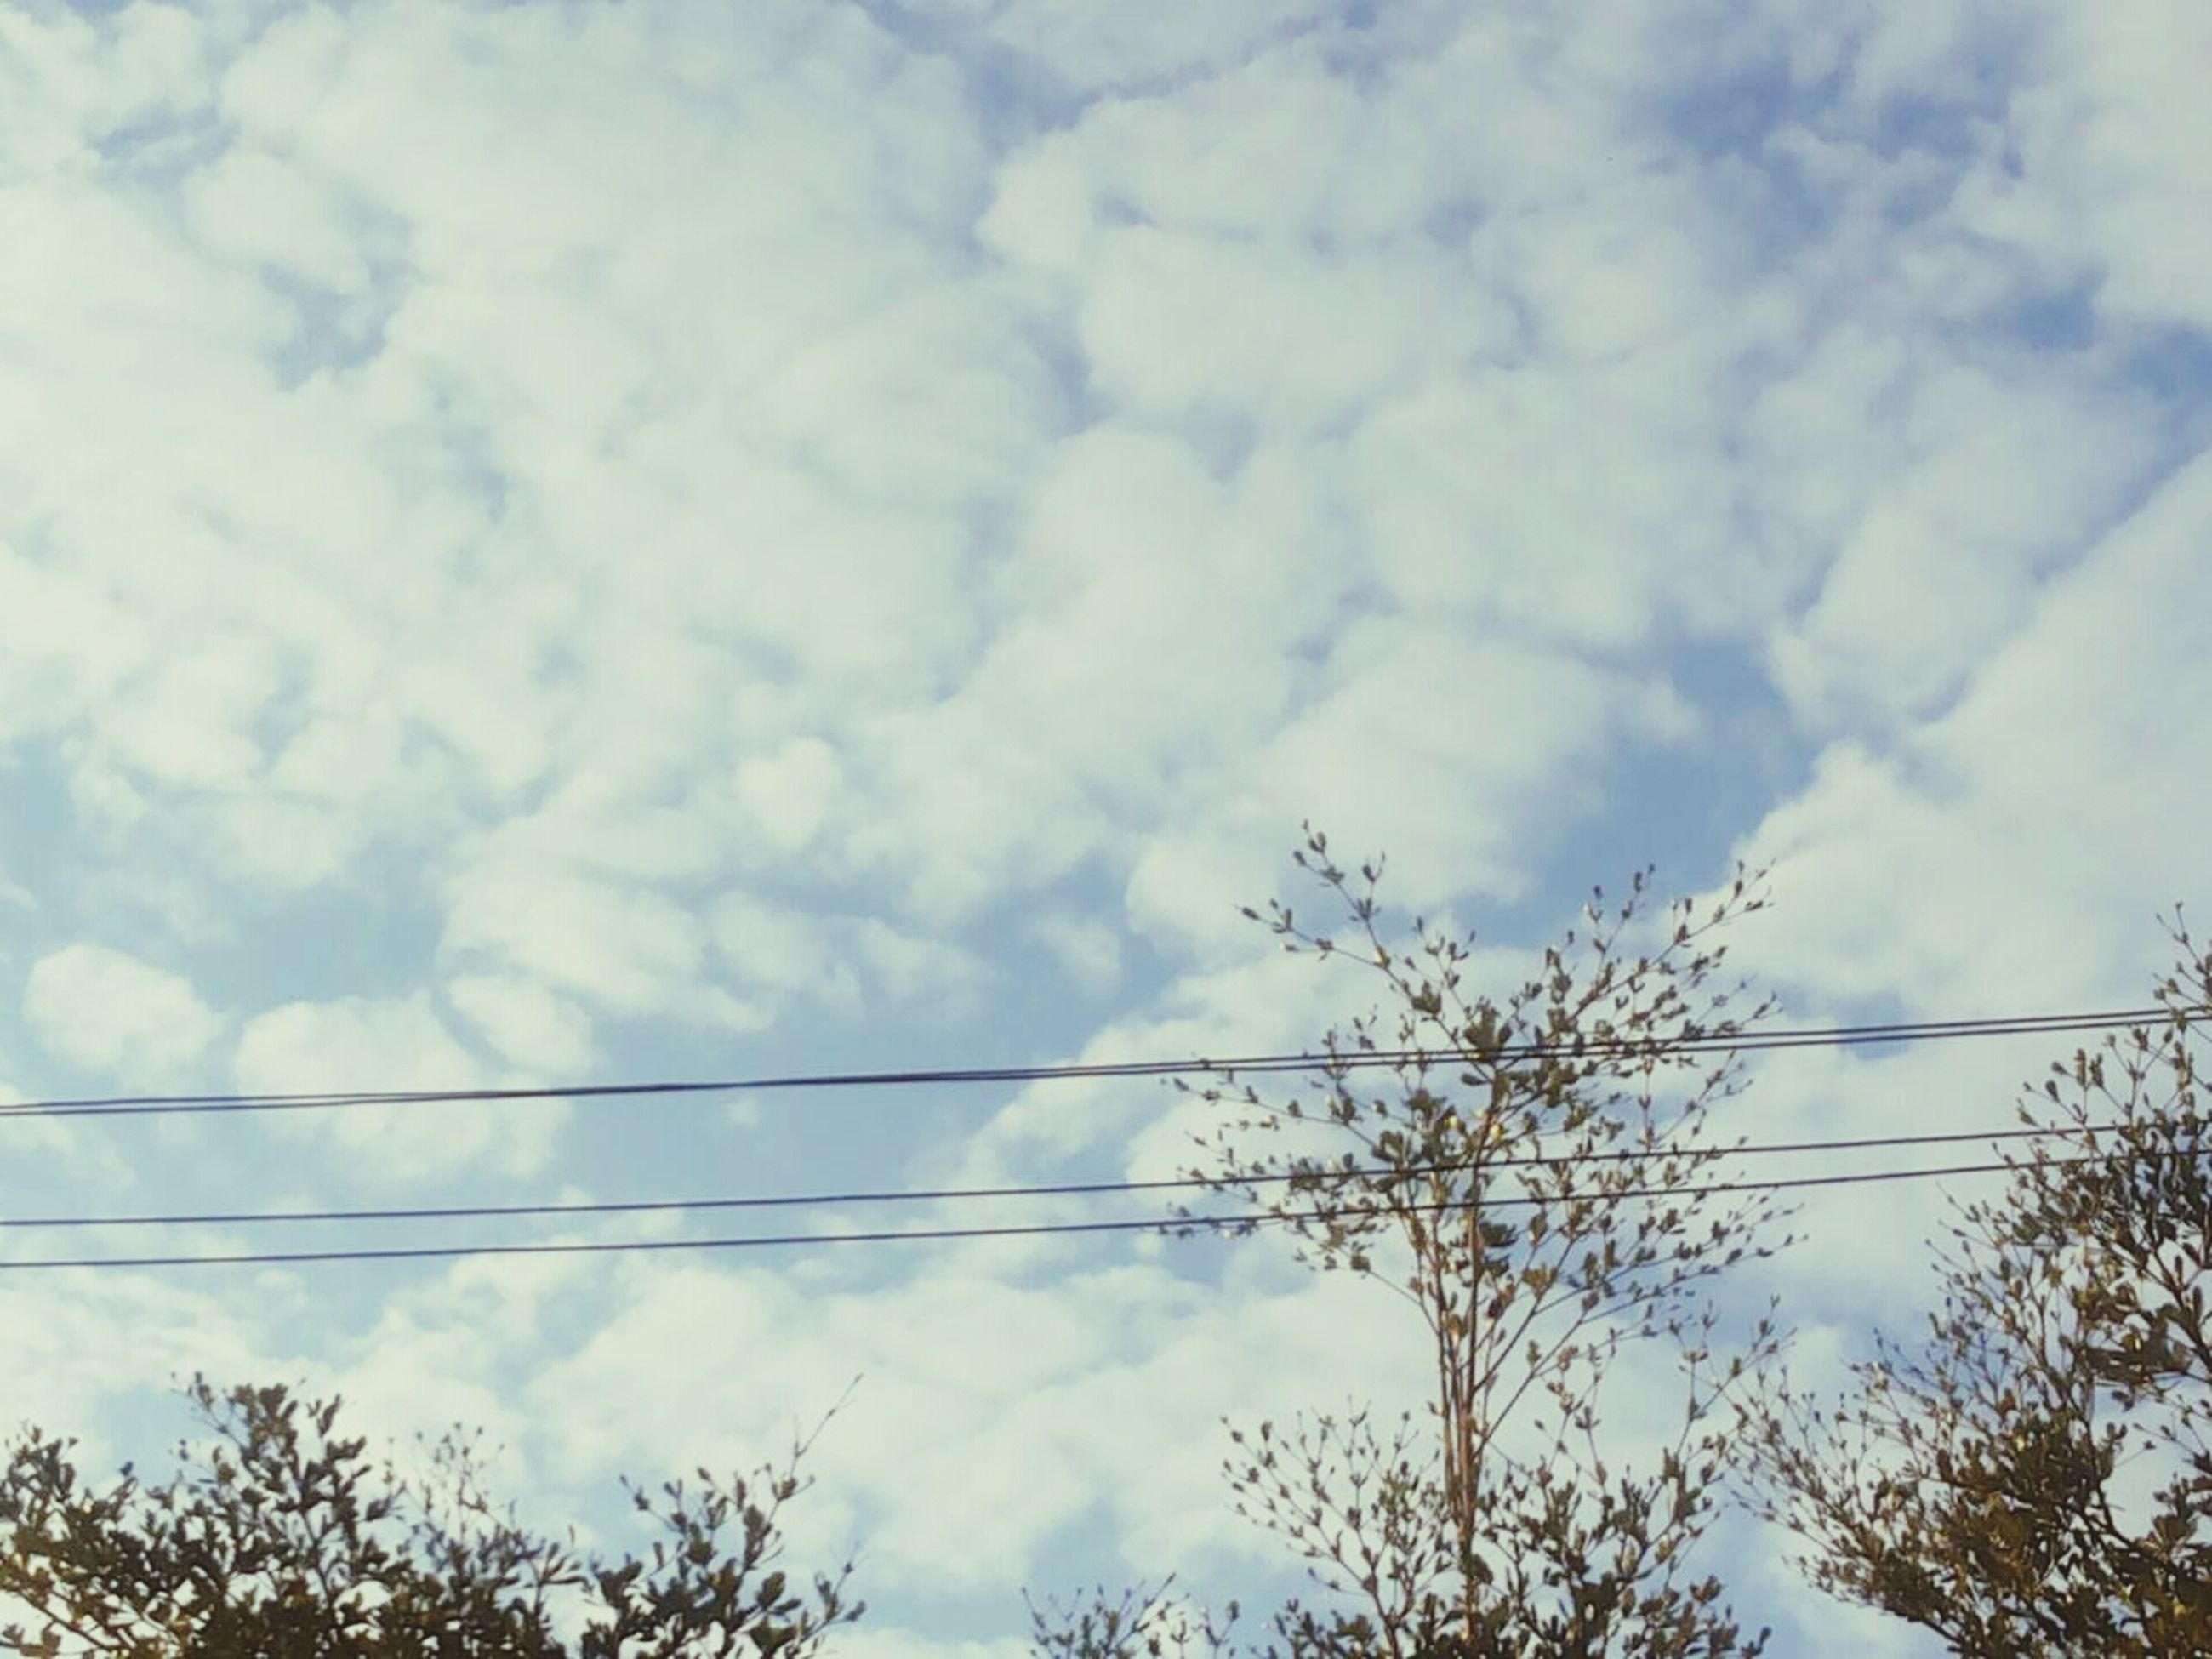 low angle view, sky, tree, cloud - sky, power line, cloudy, cloud, nature, tranquility, beauty in nature, cable, blue, branch, silhouette, electricity, outdoors, scenics, no people, high section, growth